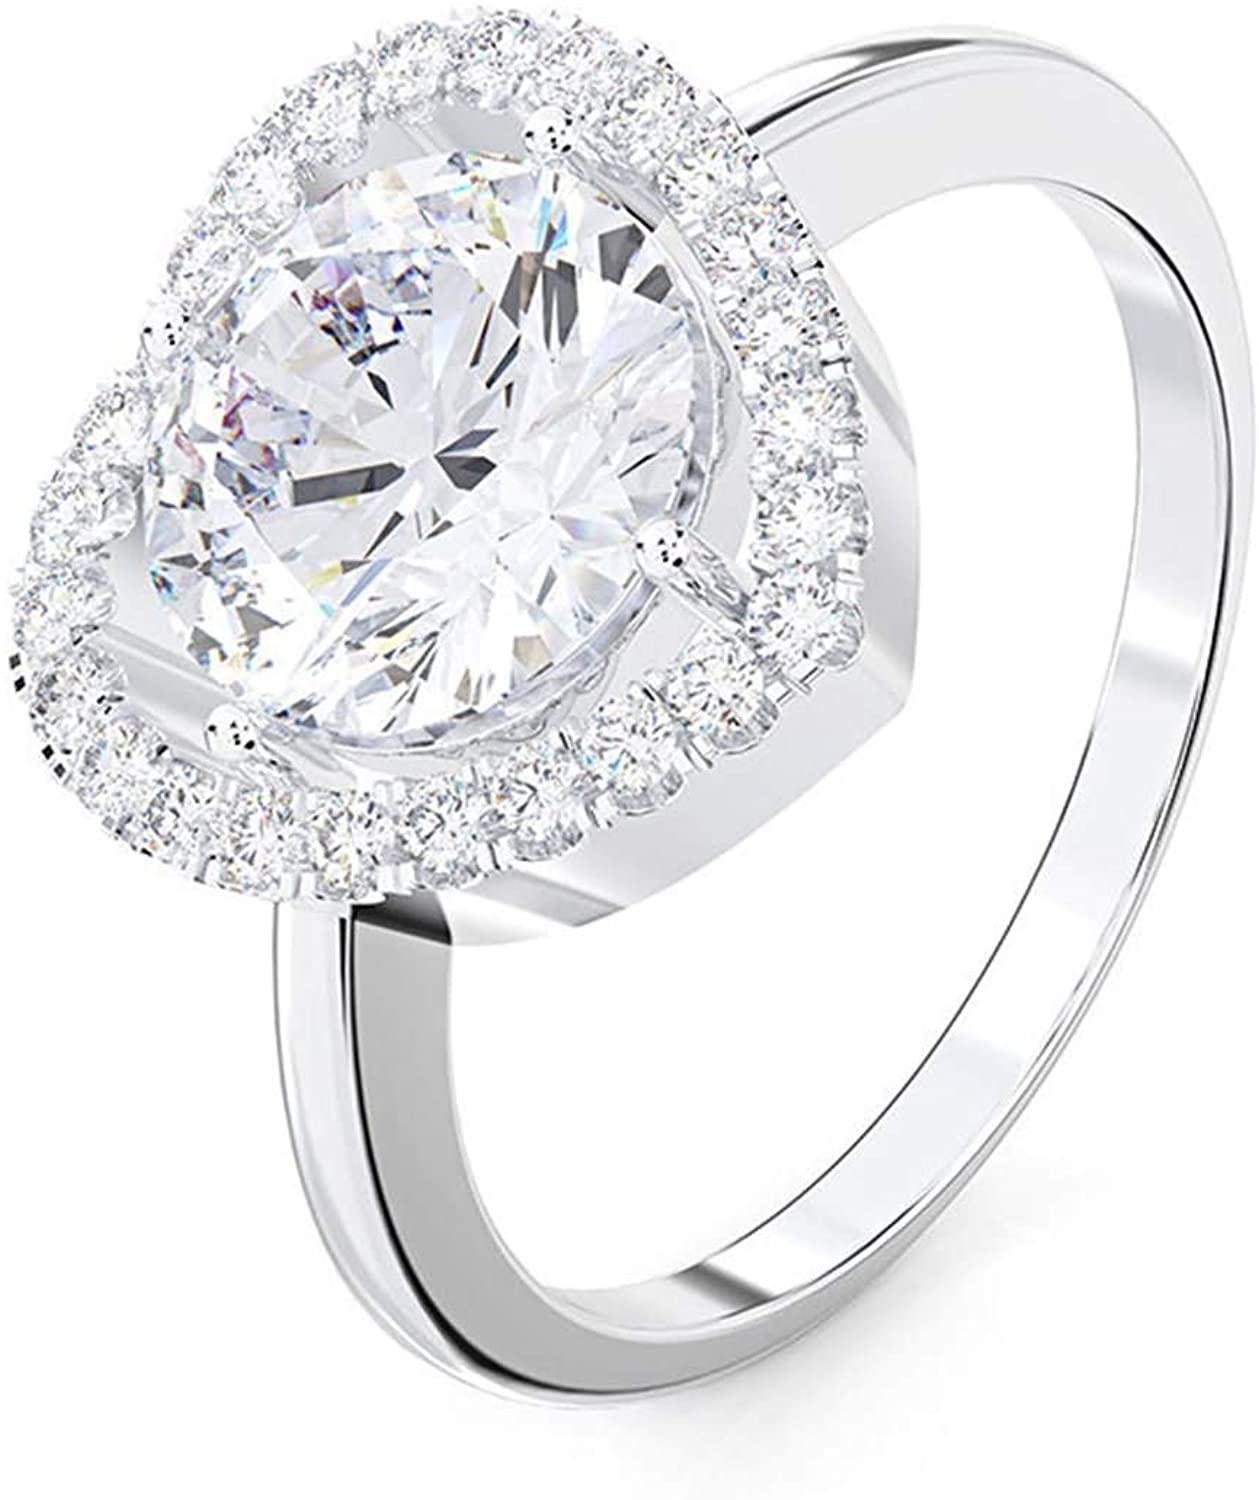 AMDXD 925 Sterling Silver Rings Engagement Heart Shape Cubic Zirconia Promise Ring Band